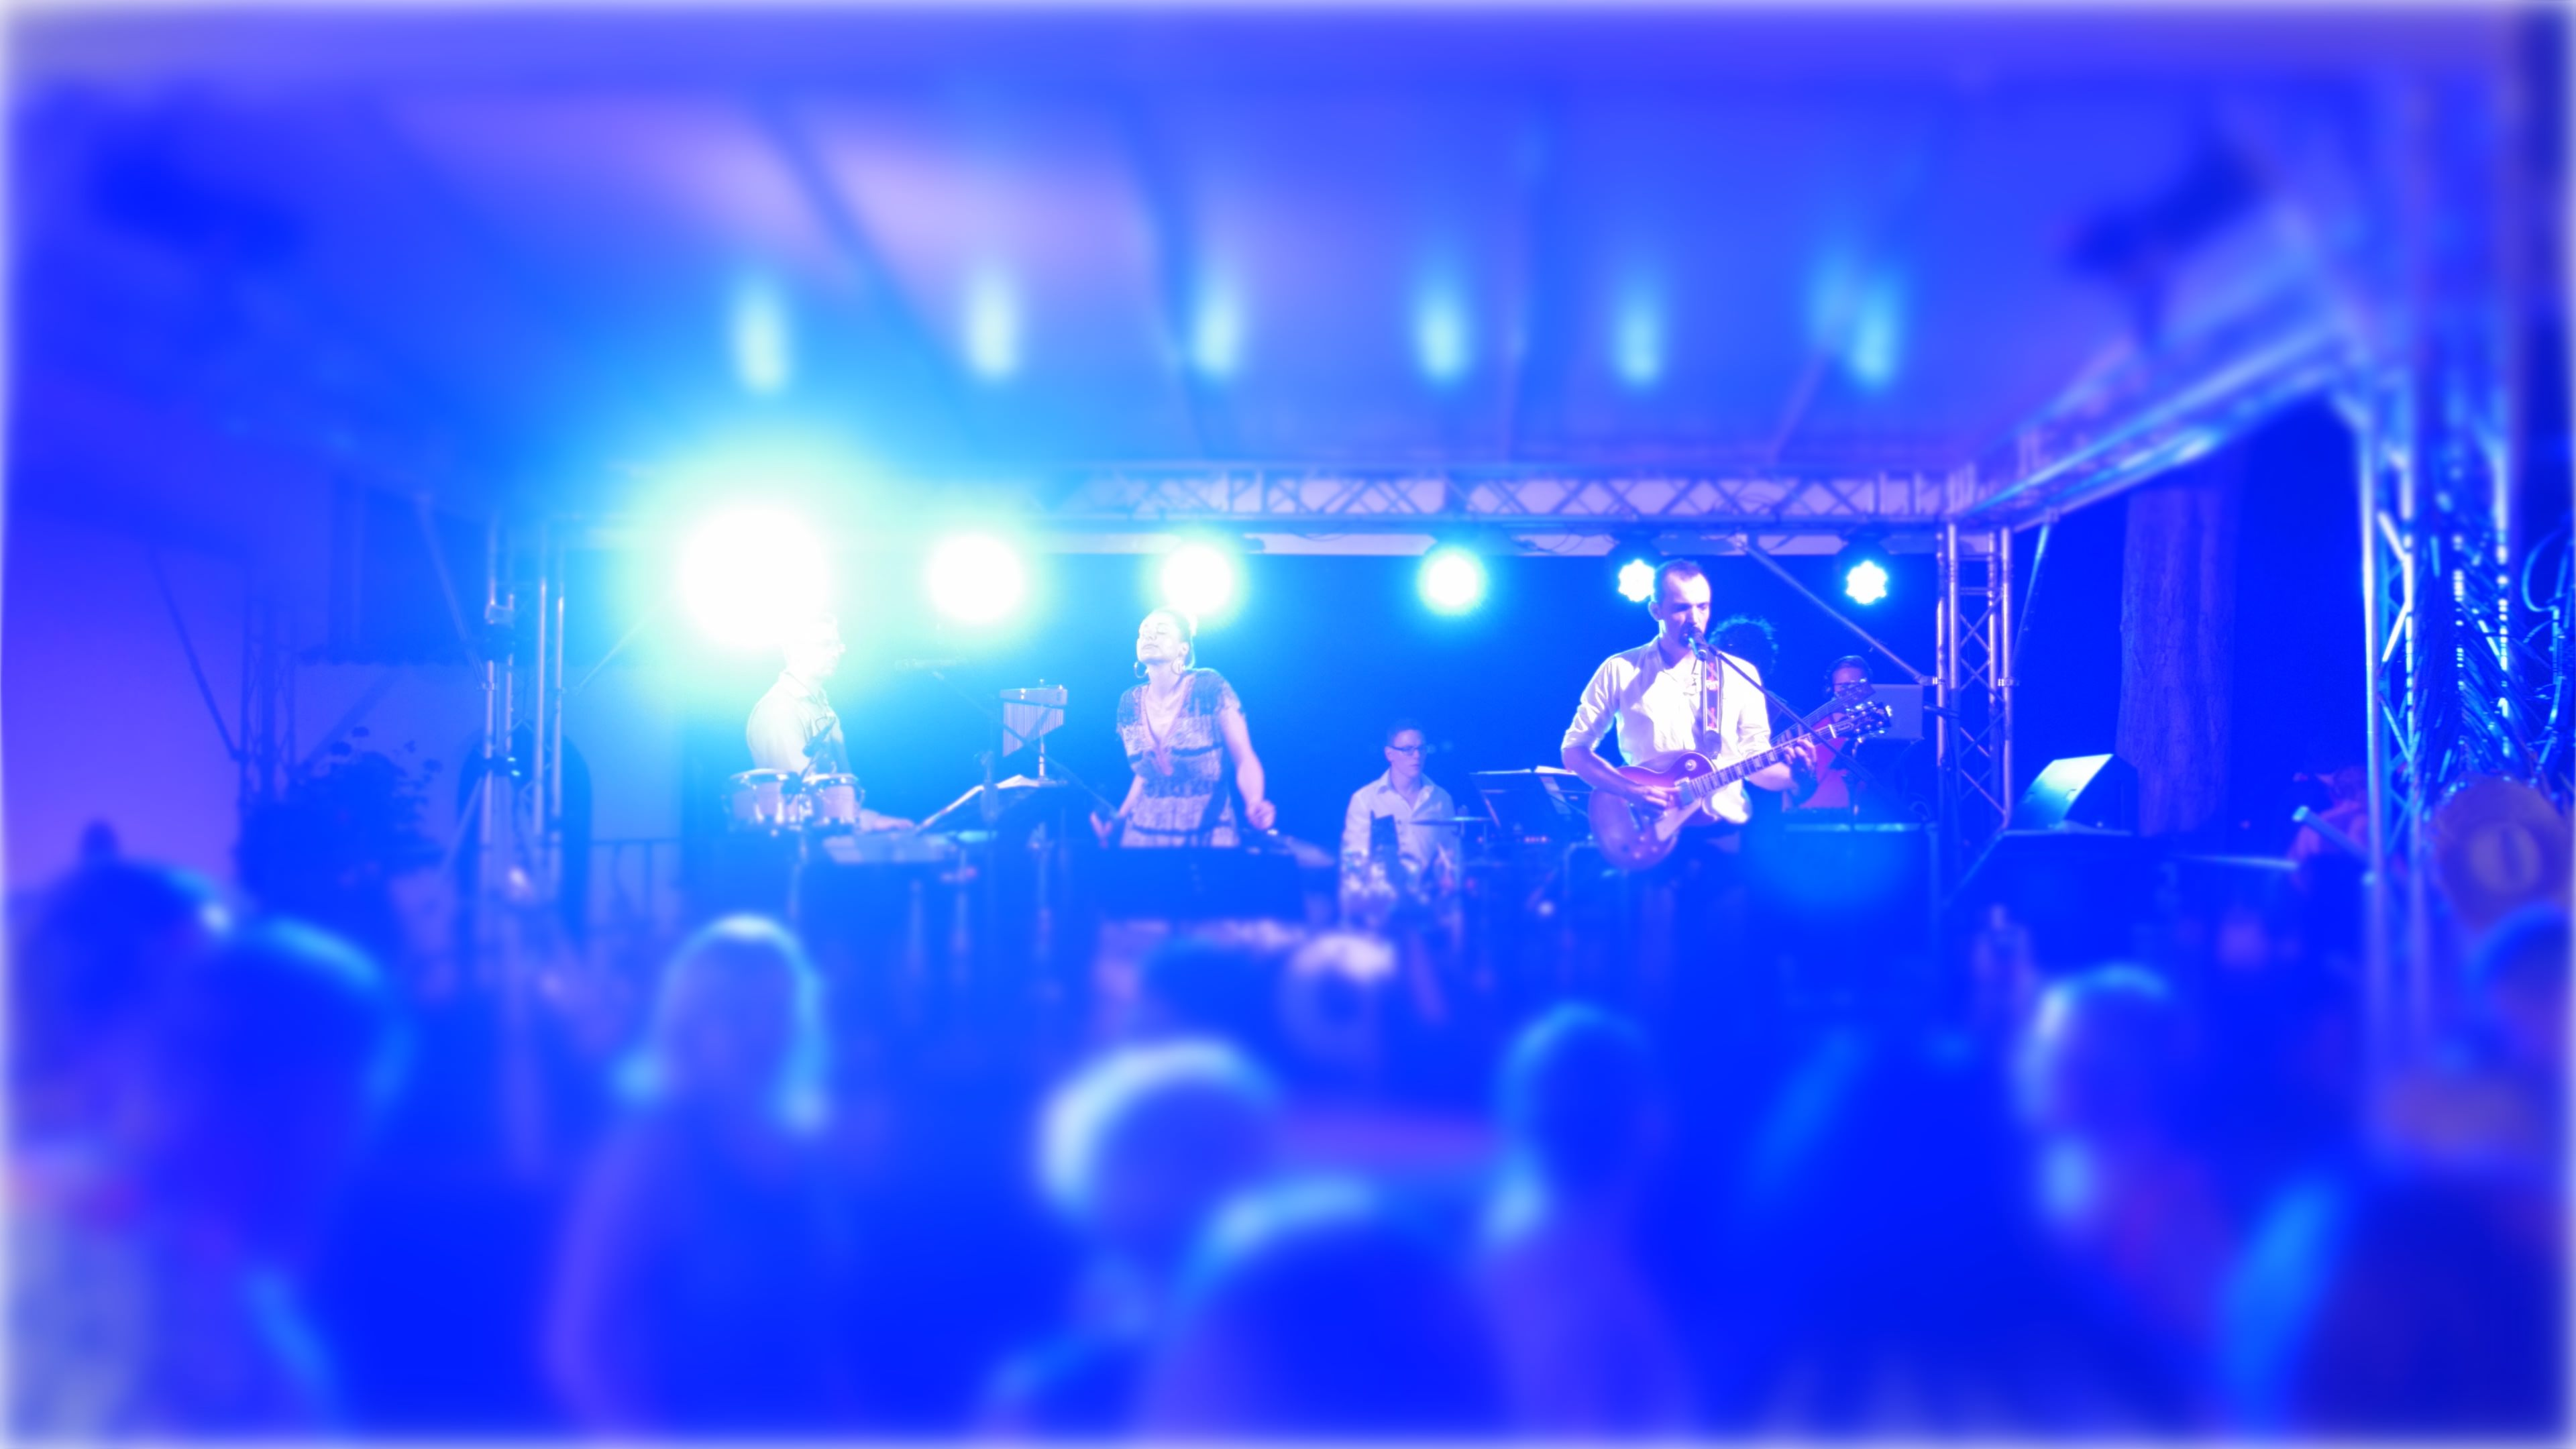 abgroovebereit Live Band : Waves by Mr.Probz :